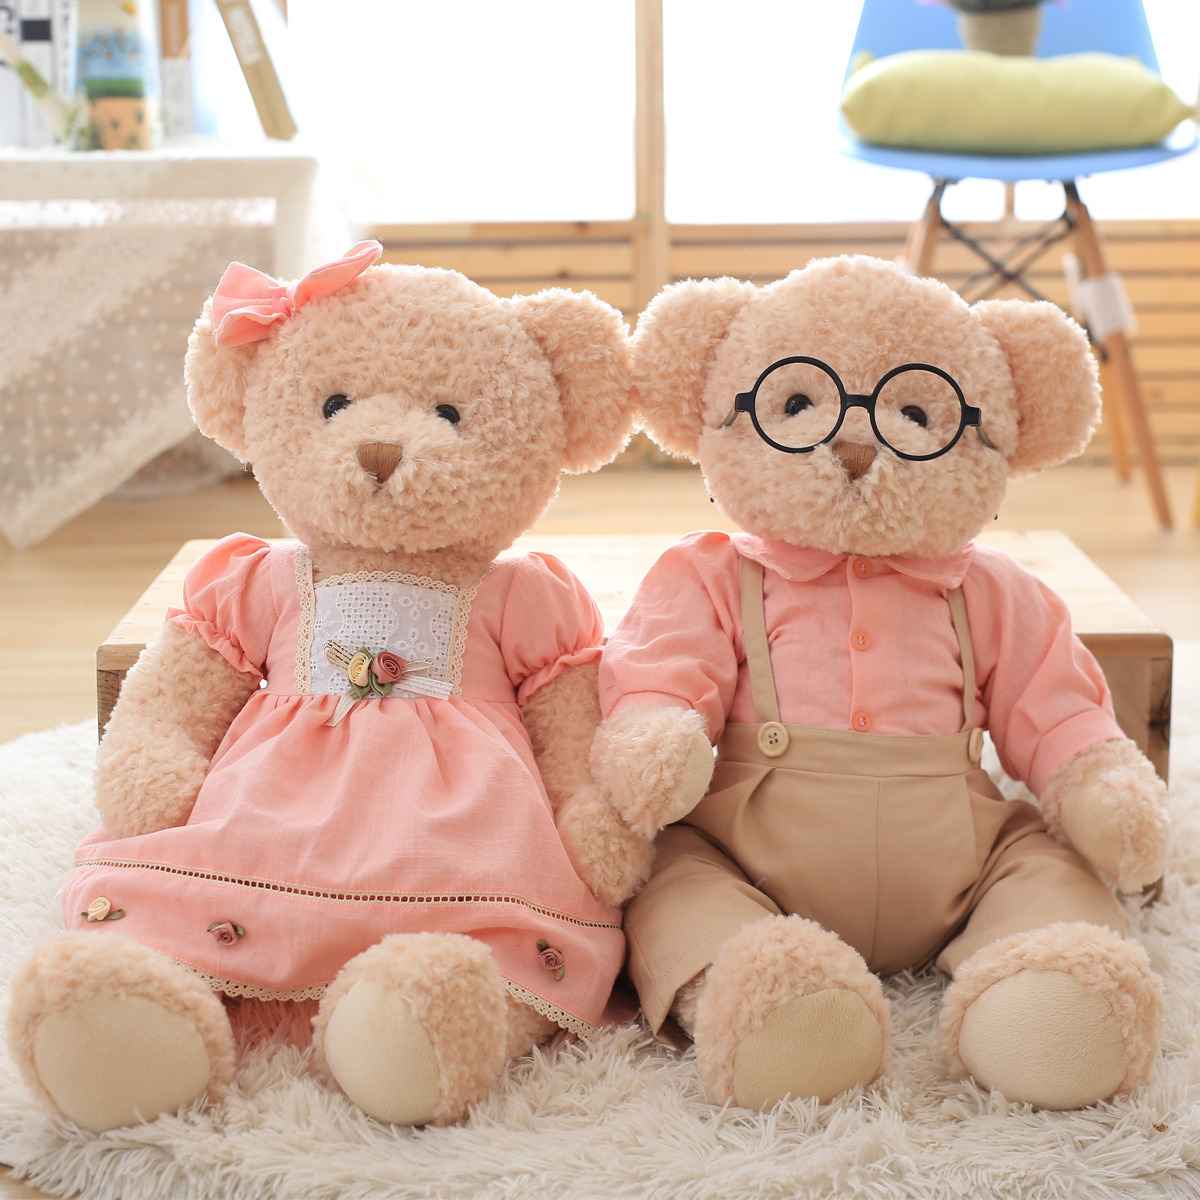 Super Kawaii 1pcs Big Size 65cm Couple Teddy Bear Stuffed & Plush Toy Doll Cute Soft Wedding Bear Dolls Girls Birthday Gifts kawaii big stuffed